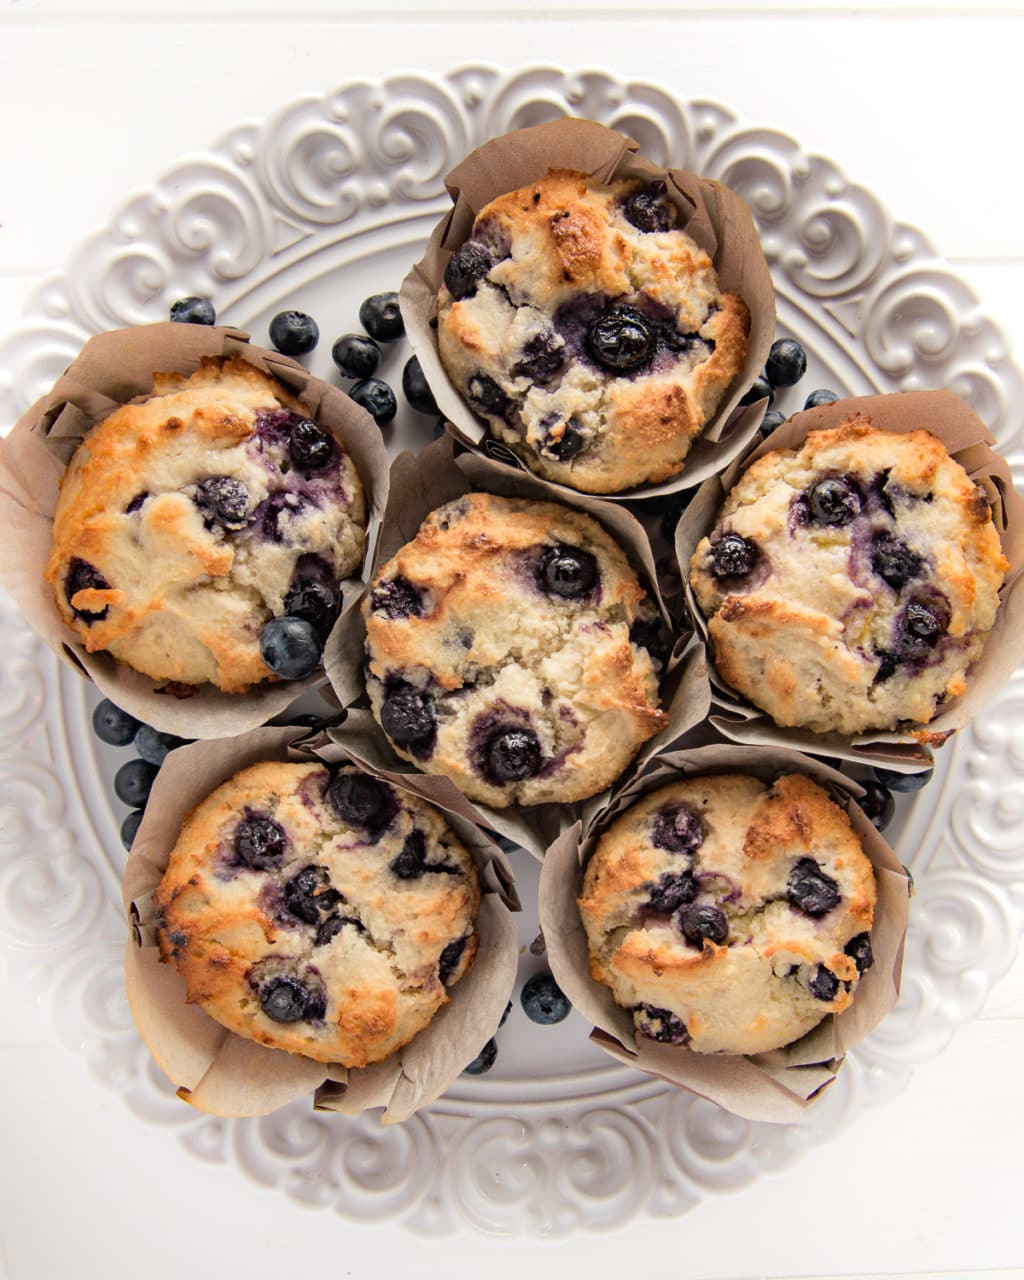 A top down shot of low carb blueberry muffins in muffin wrappers laid out on a textured bright white plate.